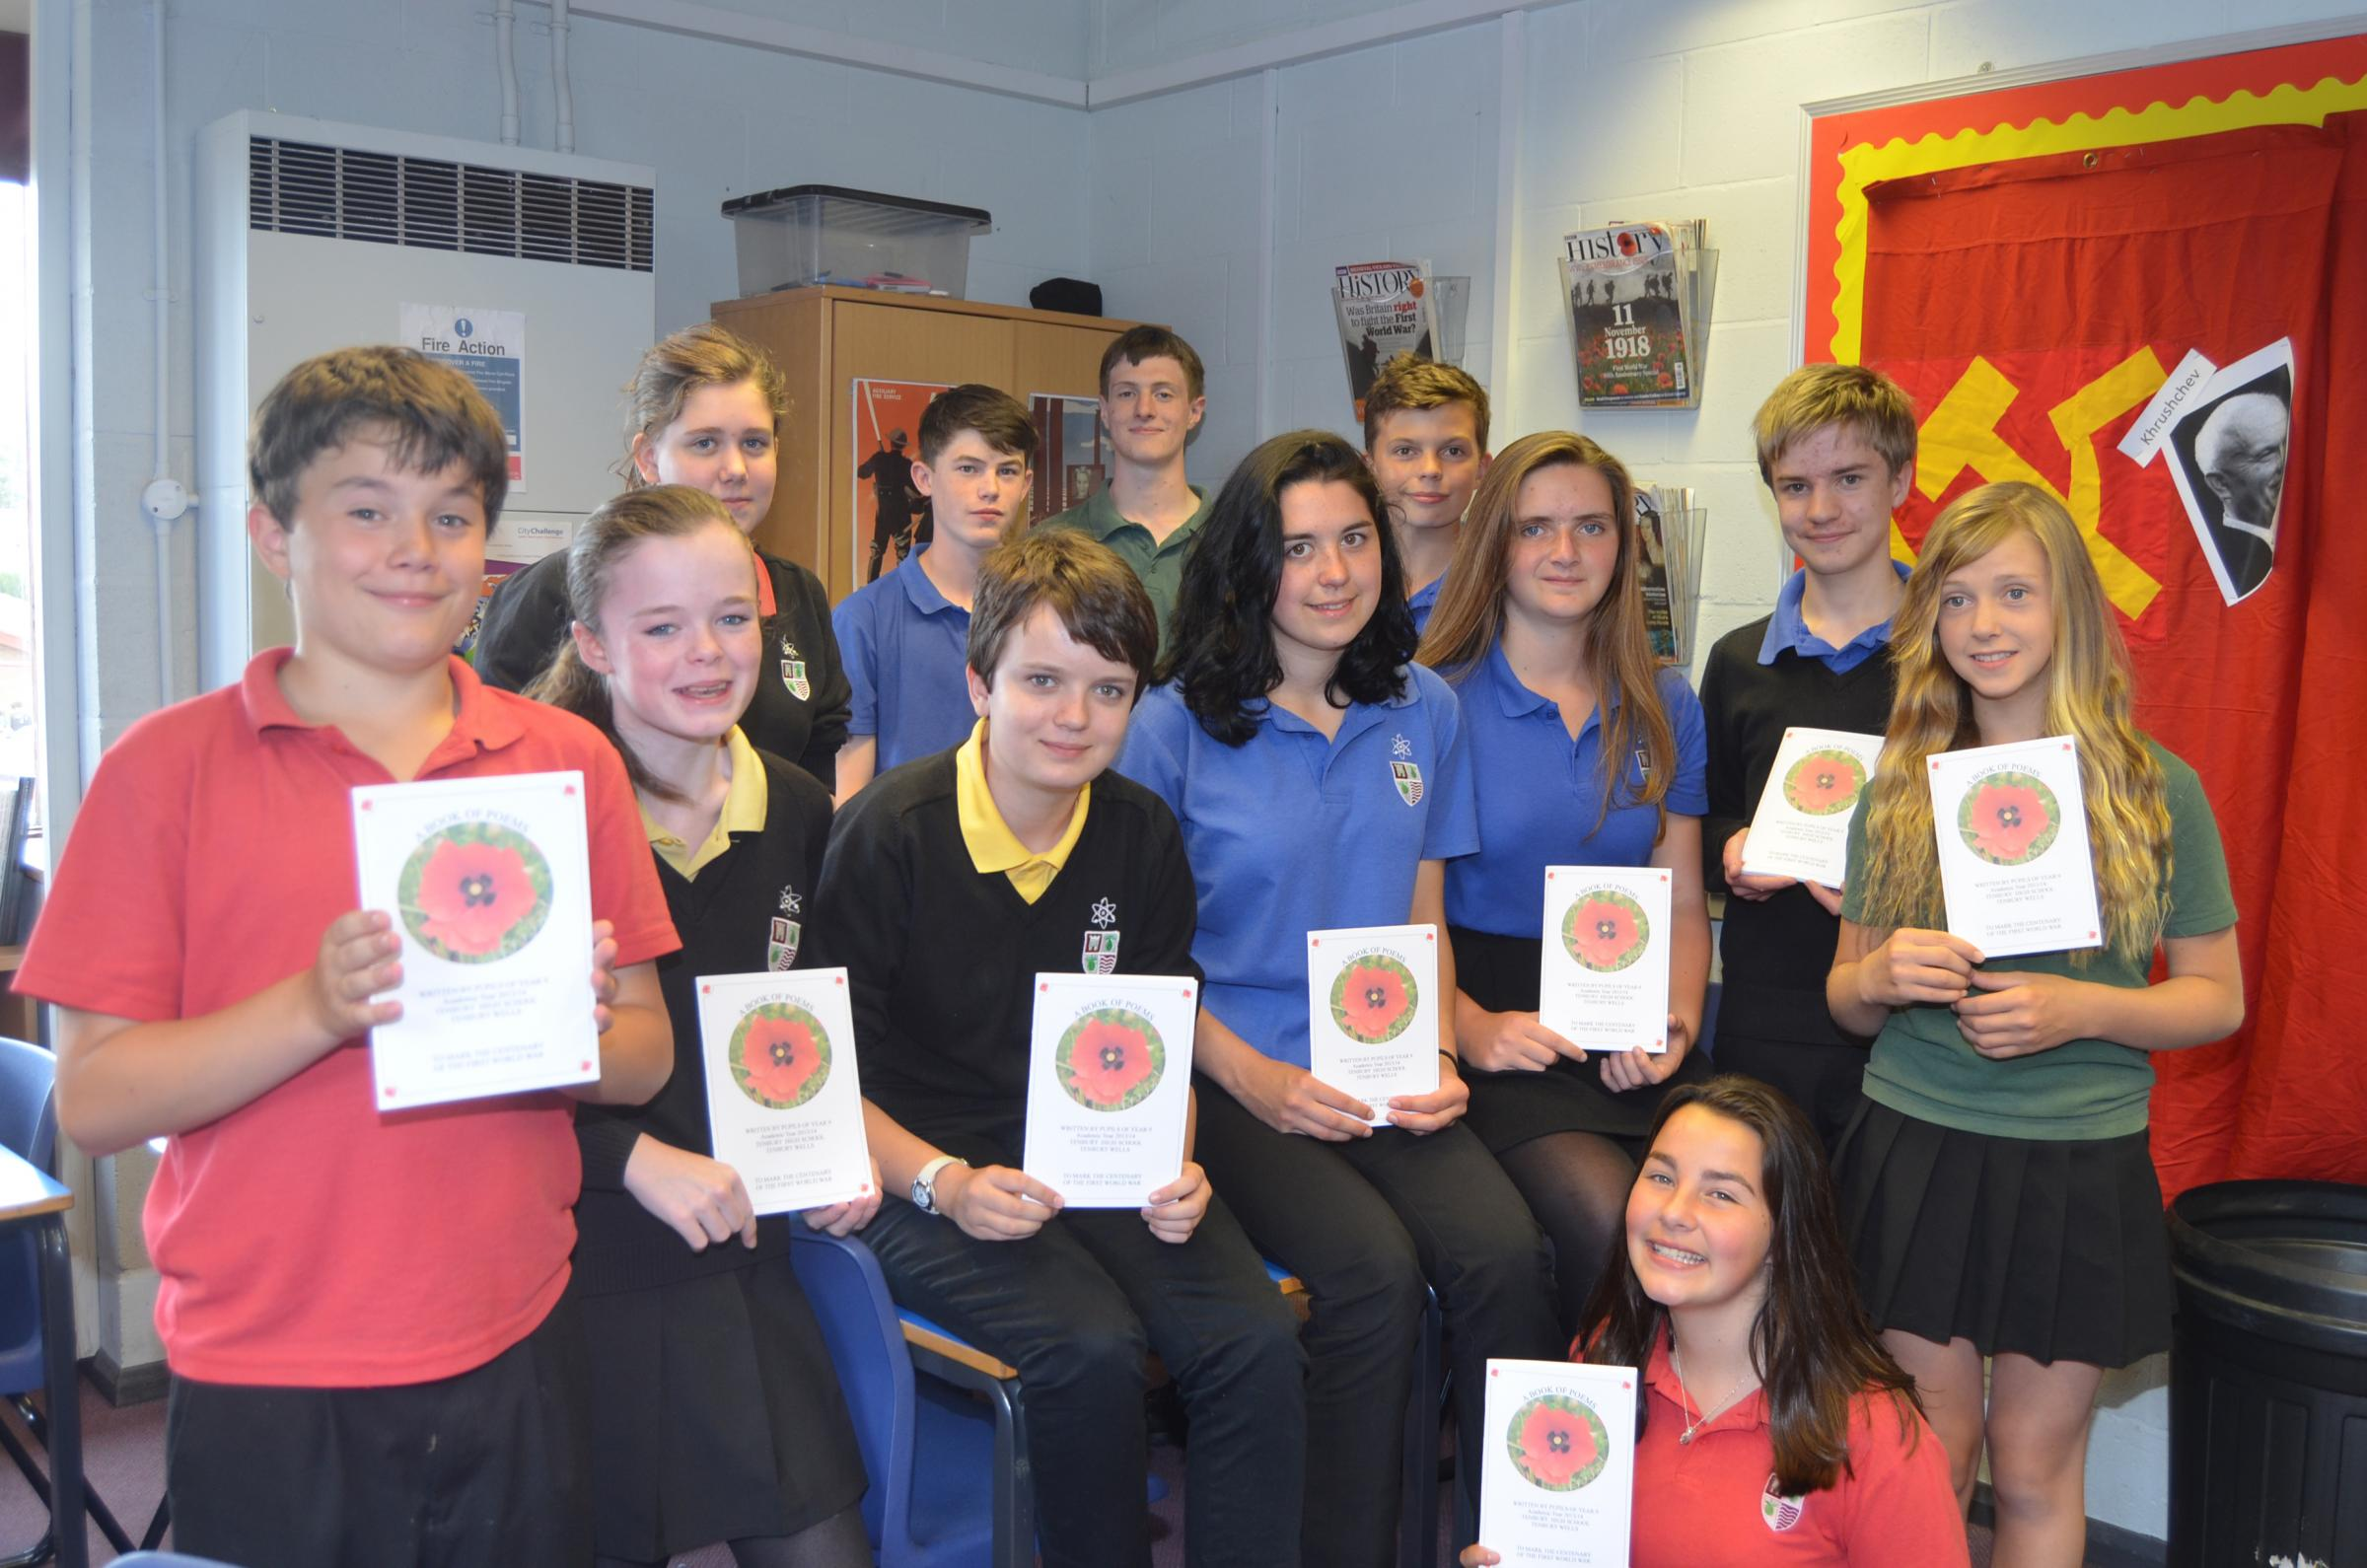 Modern day war poets at Tenbury High School are: (back from left) Gemma Lambert, Luke Staples, Will Powis, and Kit Garbutt; (middle) Piers Van Straaten,  Beth Edwards, Grace Everall, Eve Watson, Kitty Houchin, Ja